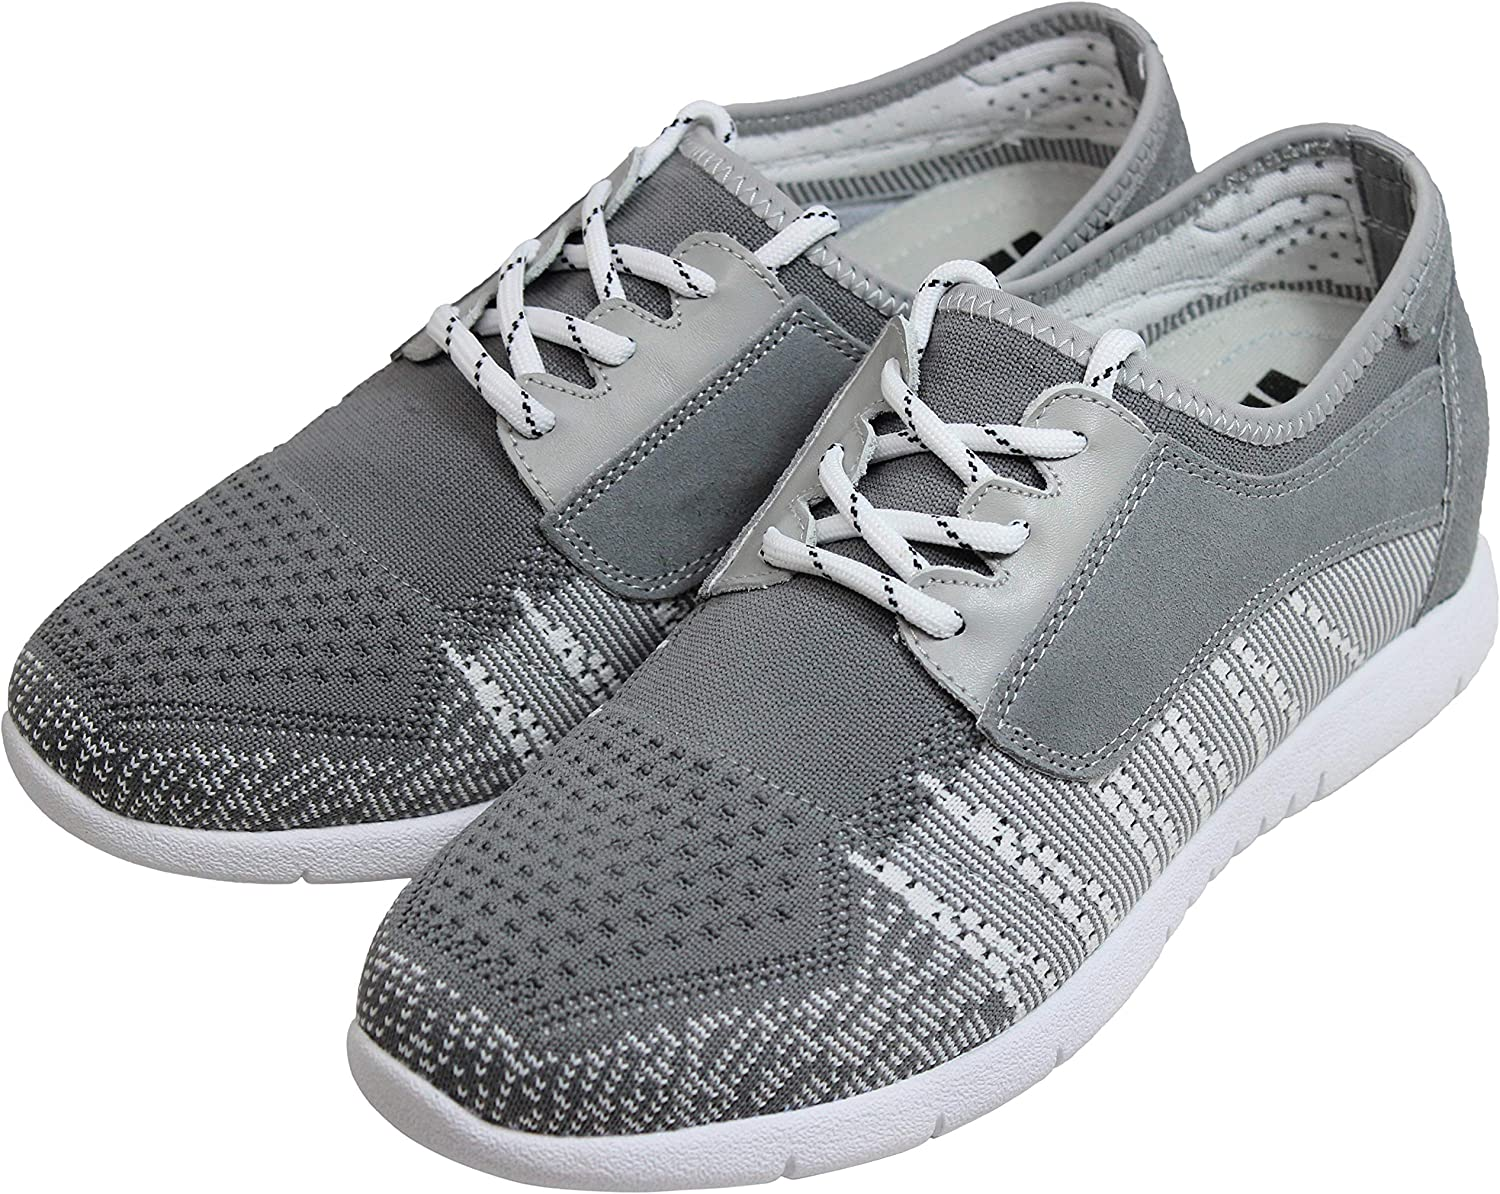 D62108 2.8 Inches Taller Grey//White Knitted//Suede Lace-up Lightweight Trainer Sneakers TOTO Mens Invisible Height Increasing Elevator Shoes